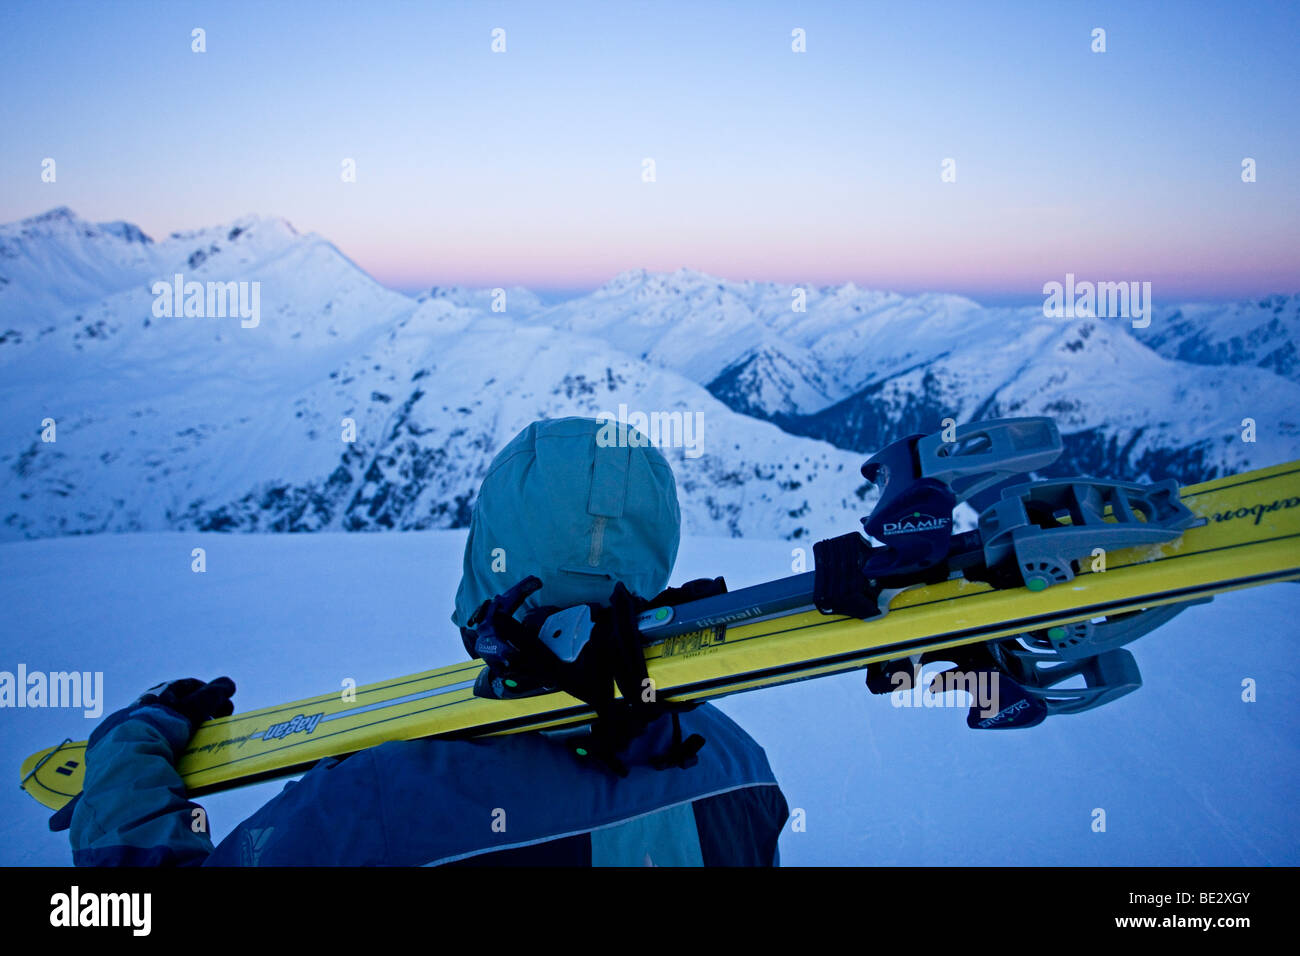 Ski touring, looking over the snowy mountain peaks shortly before sunrise, Verwall Alps, North Tyrol, Austria, Europe - Stock Image